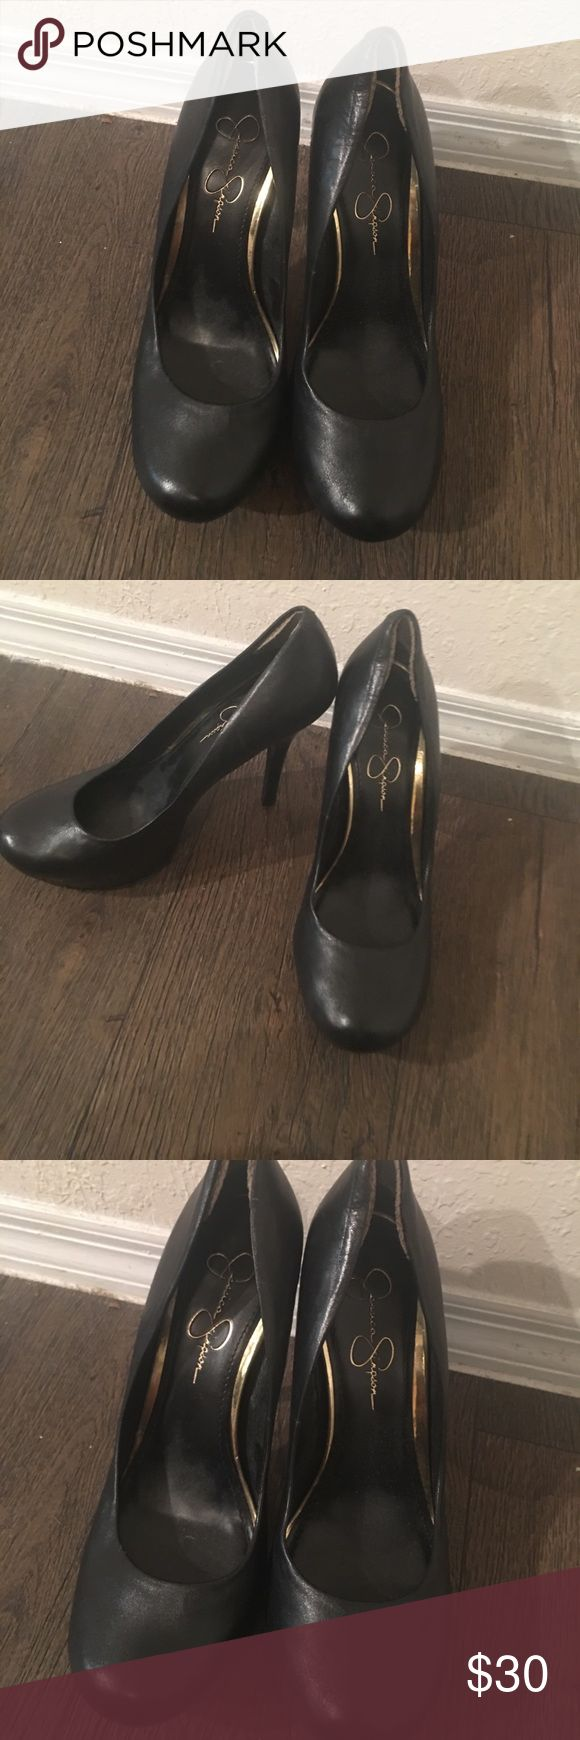 Jessica Simpson Heels Jessica Simpson heels in great condition. Size 8.5. Jessica Simpson Shoes Heels